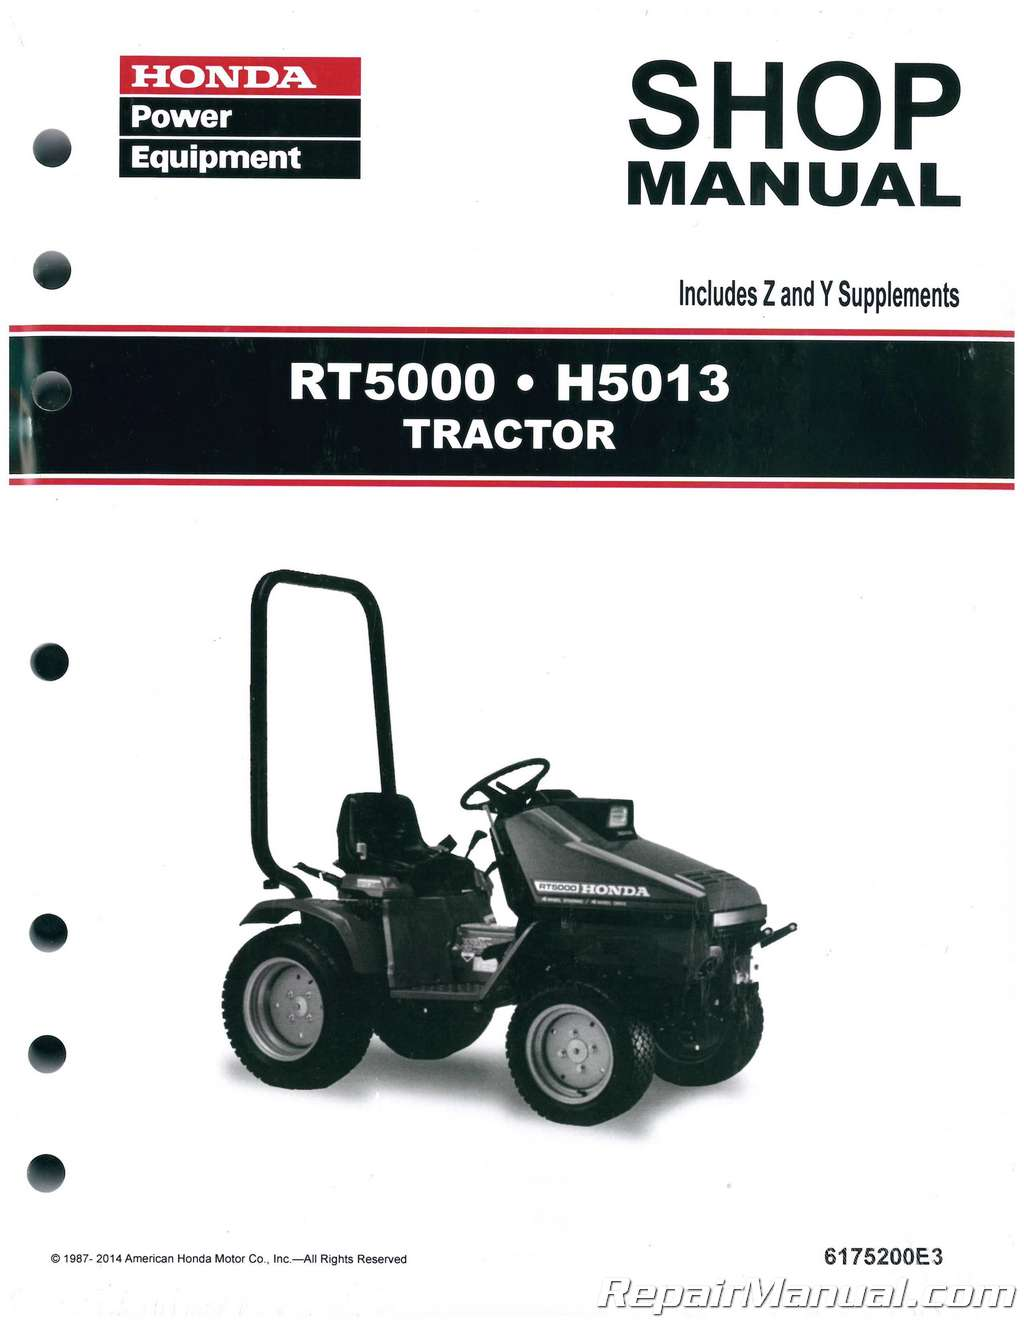 ... Lawn Mower honda hrr2166vka parts manual. Image not ...